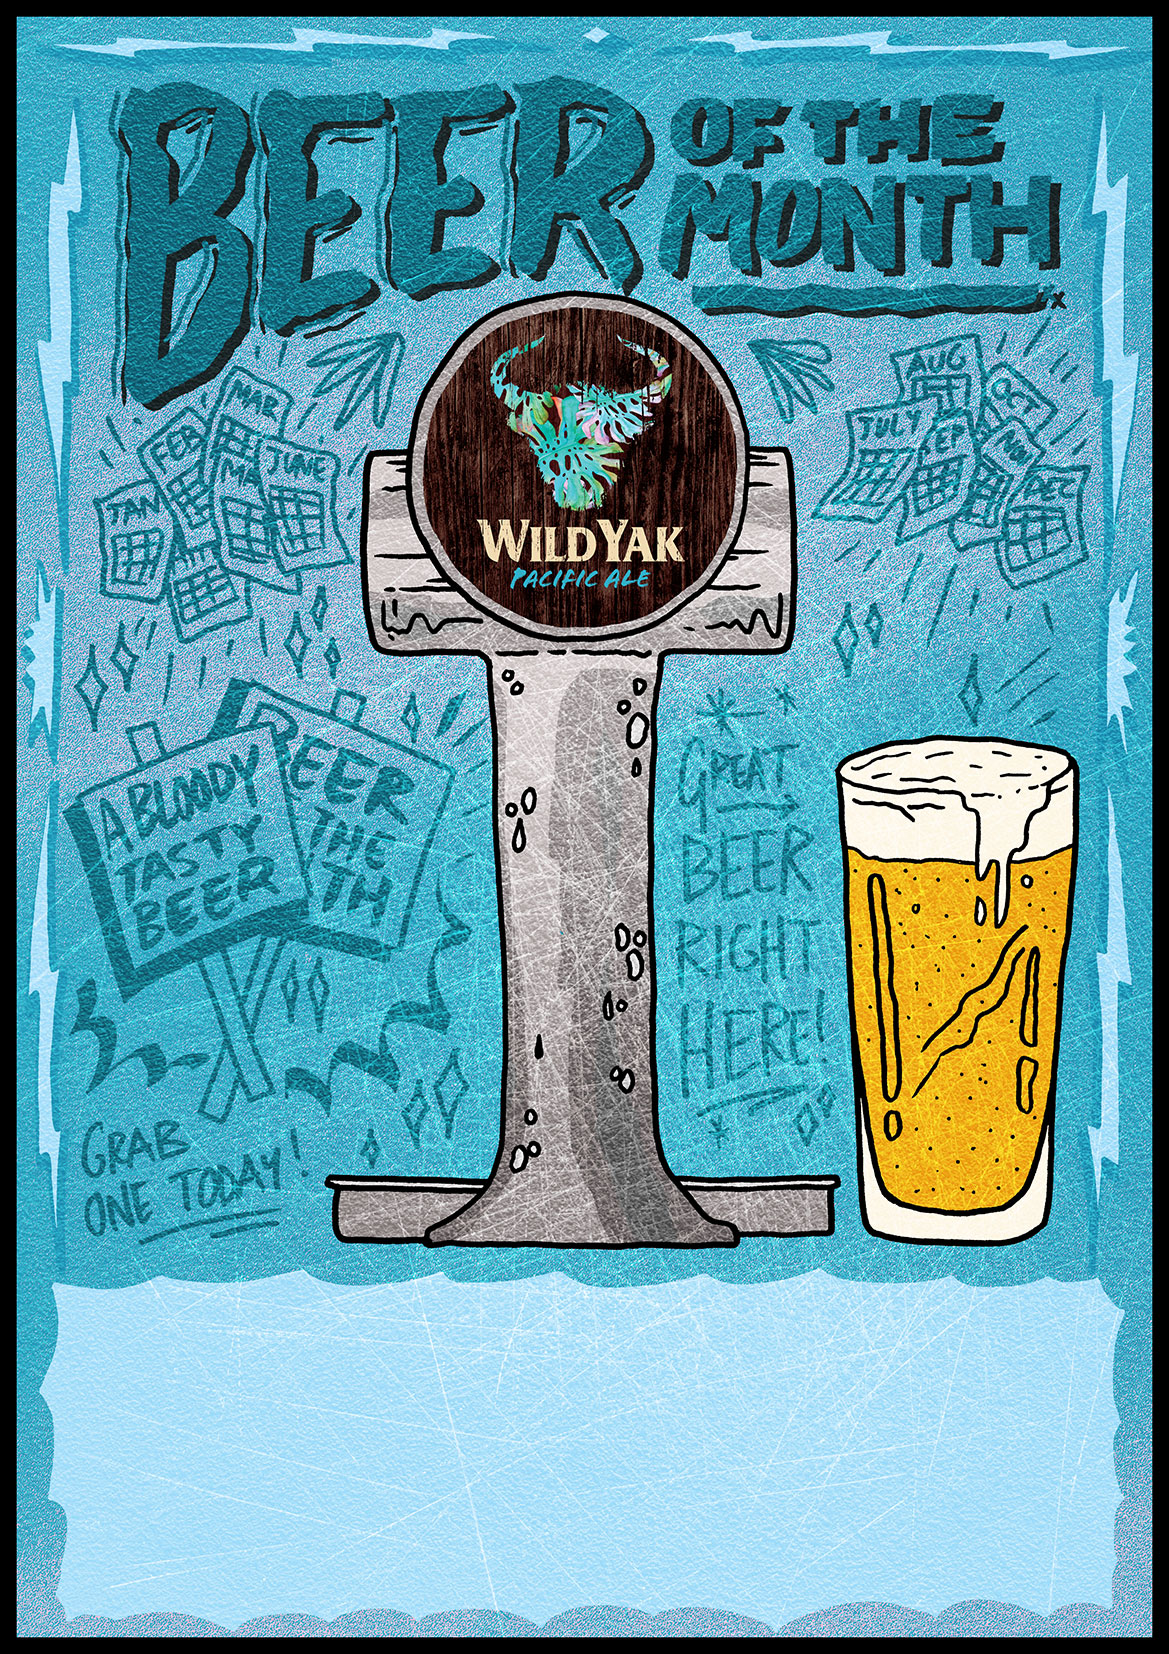 Beer-of-the-month-BLUE.jpg